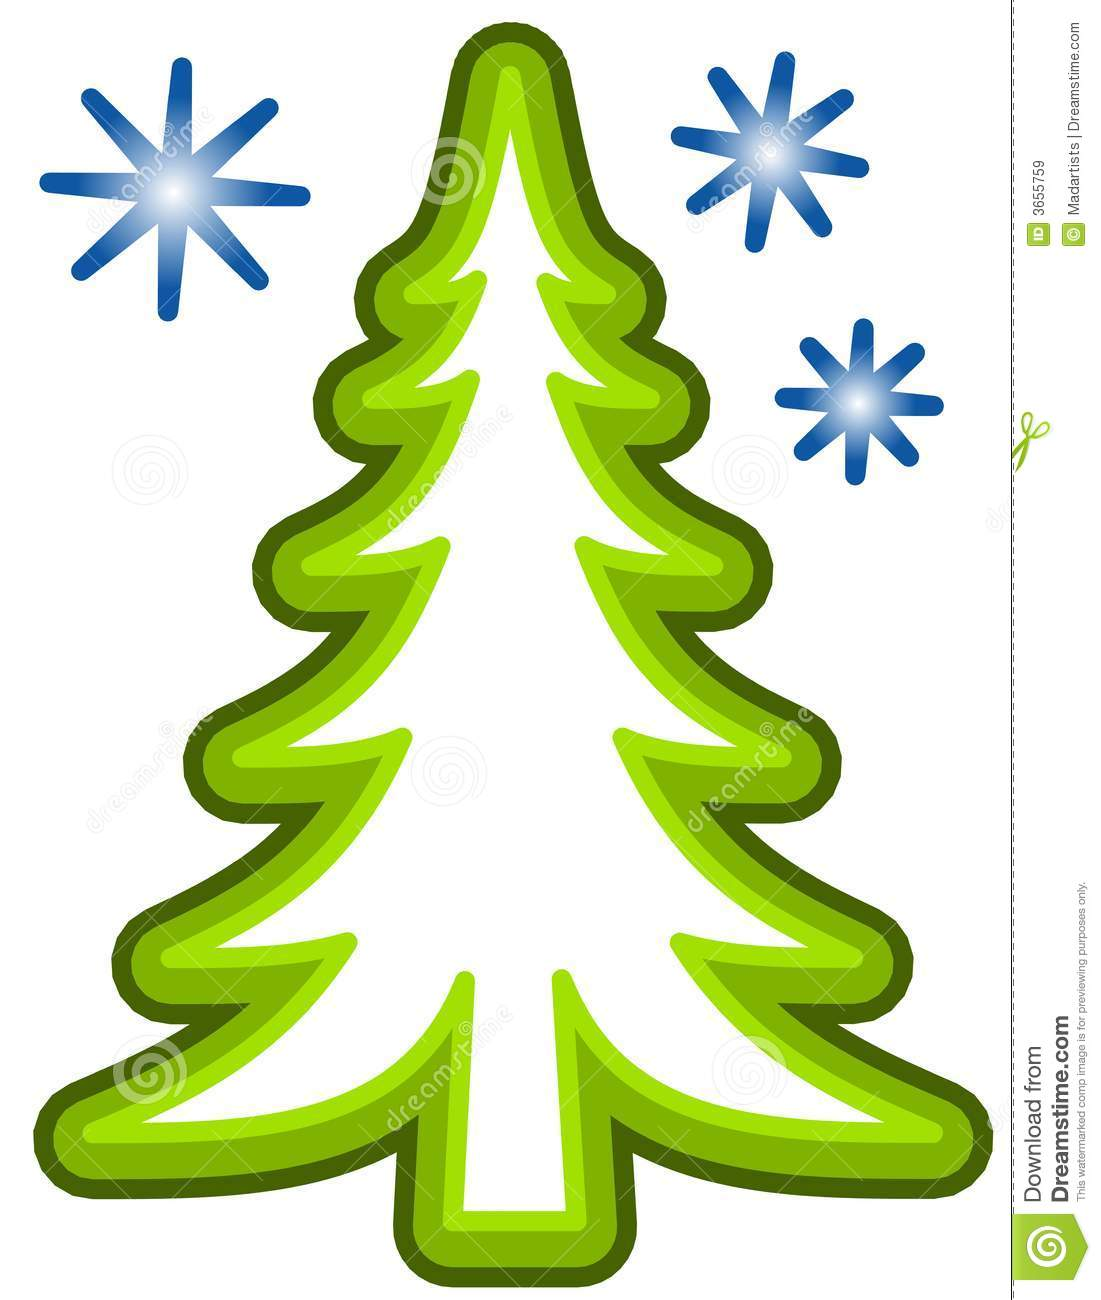 Chirstmas Tree Clipart - Clipart Kid